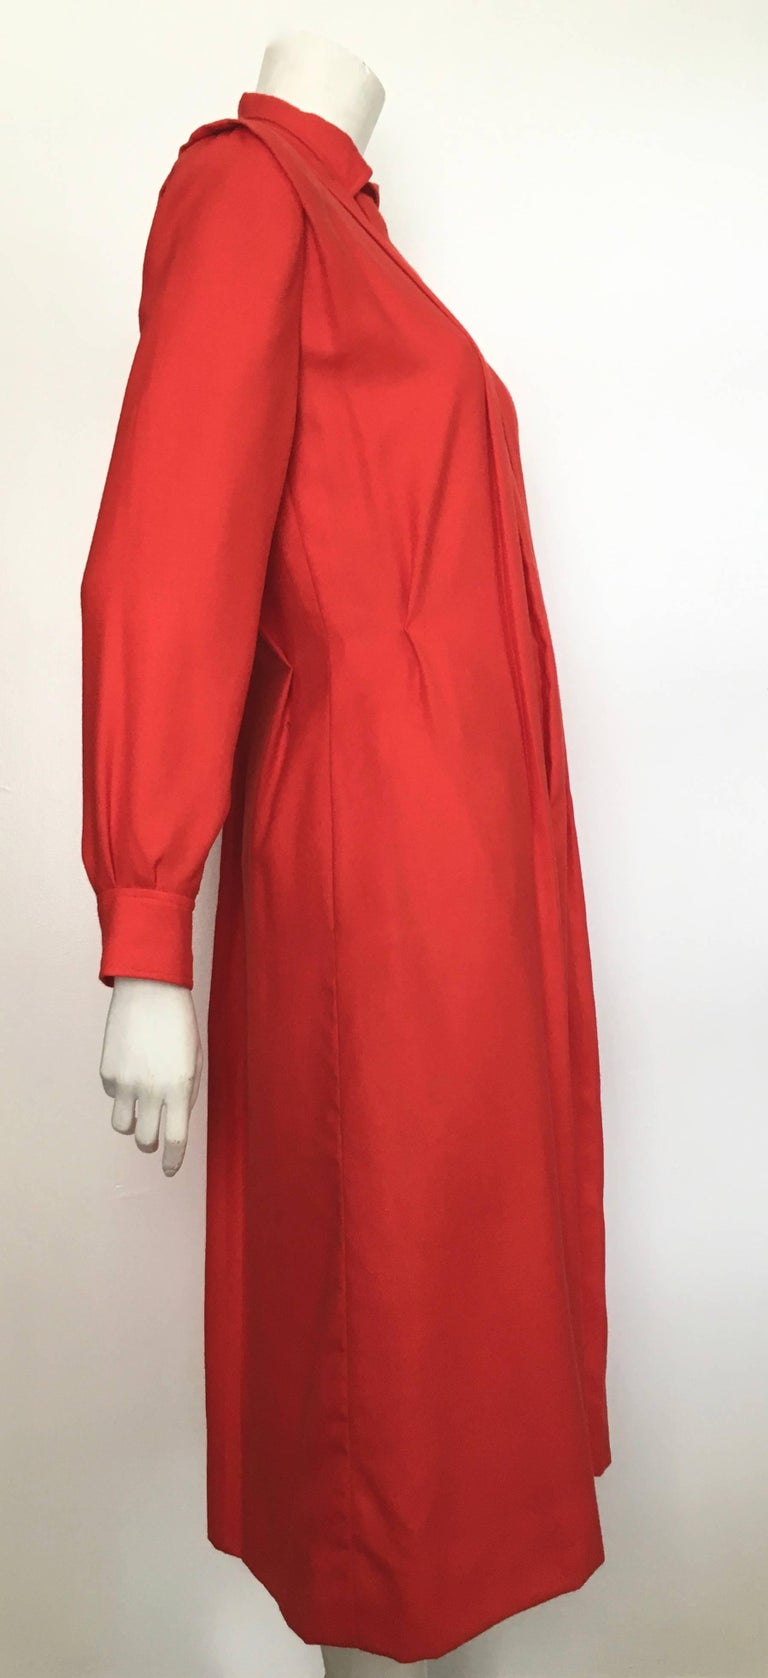 Courreges Red Wool Long Sleeve Dress with Pockets, 1980s  In Excellent Condition For Sale In Atlanta, GA